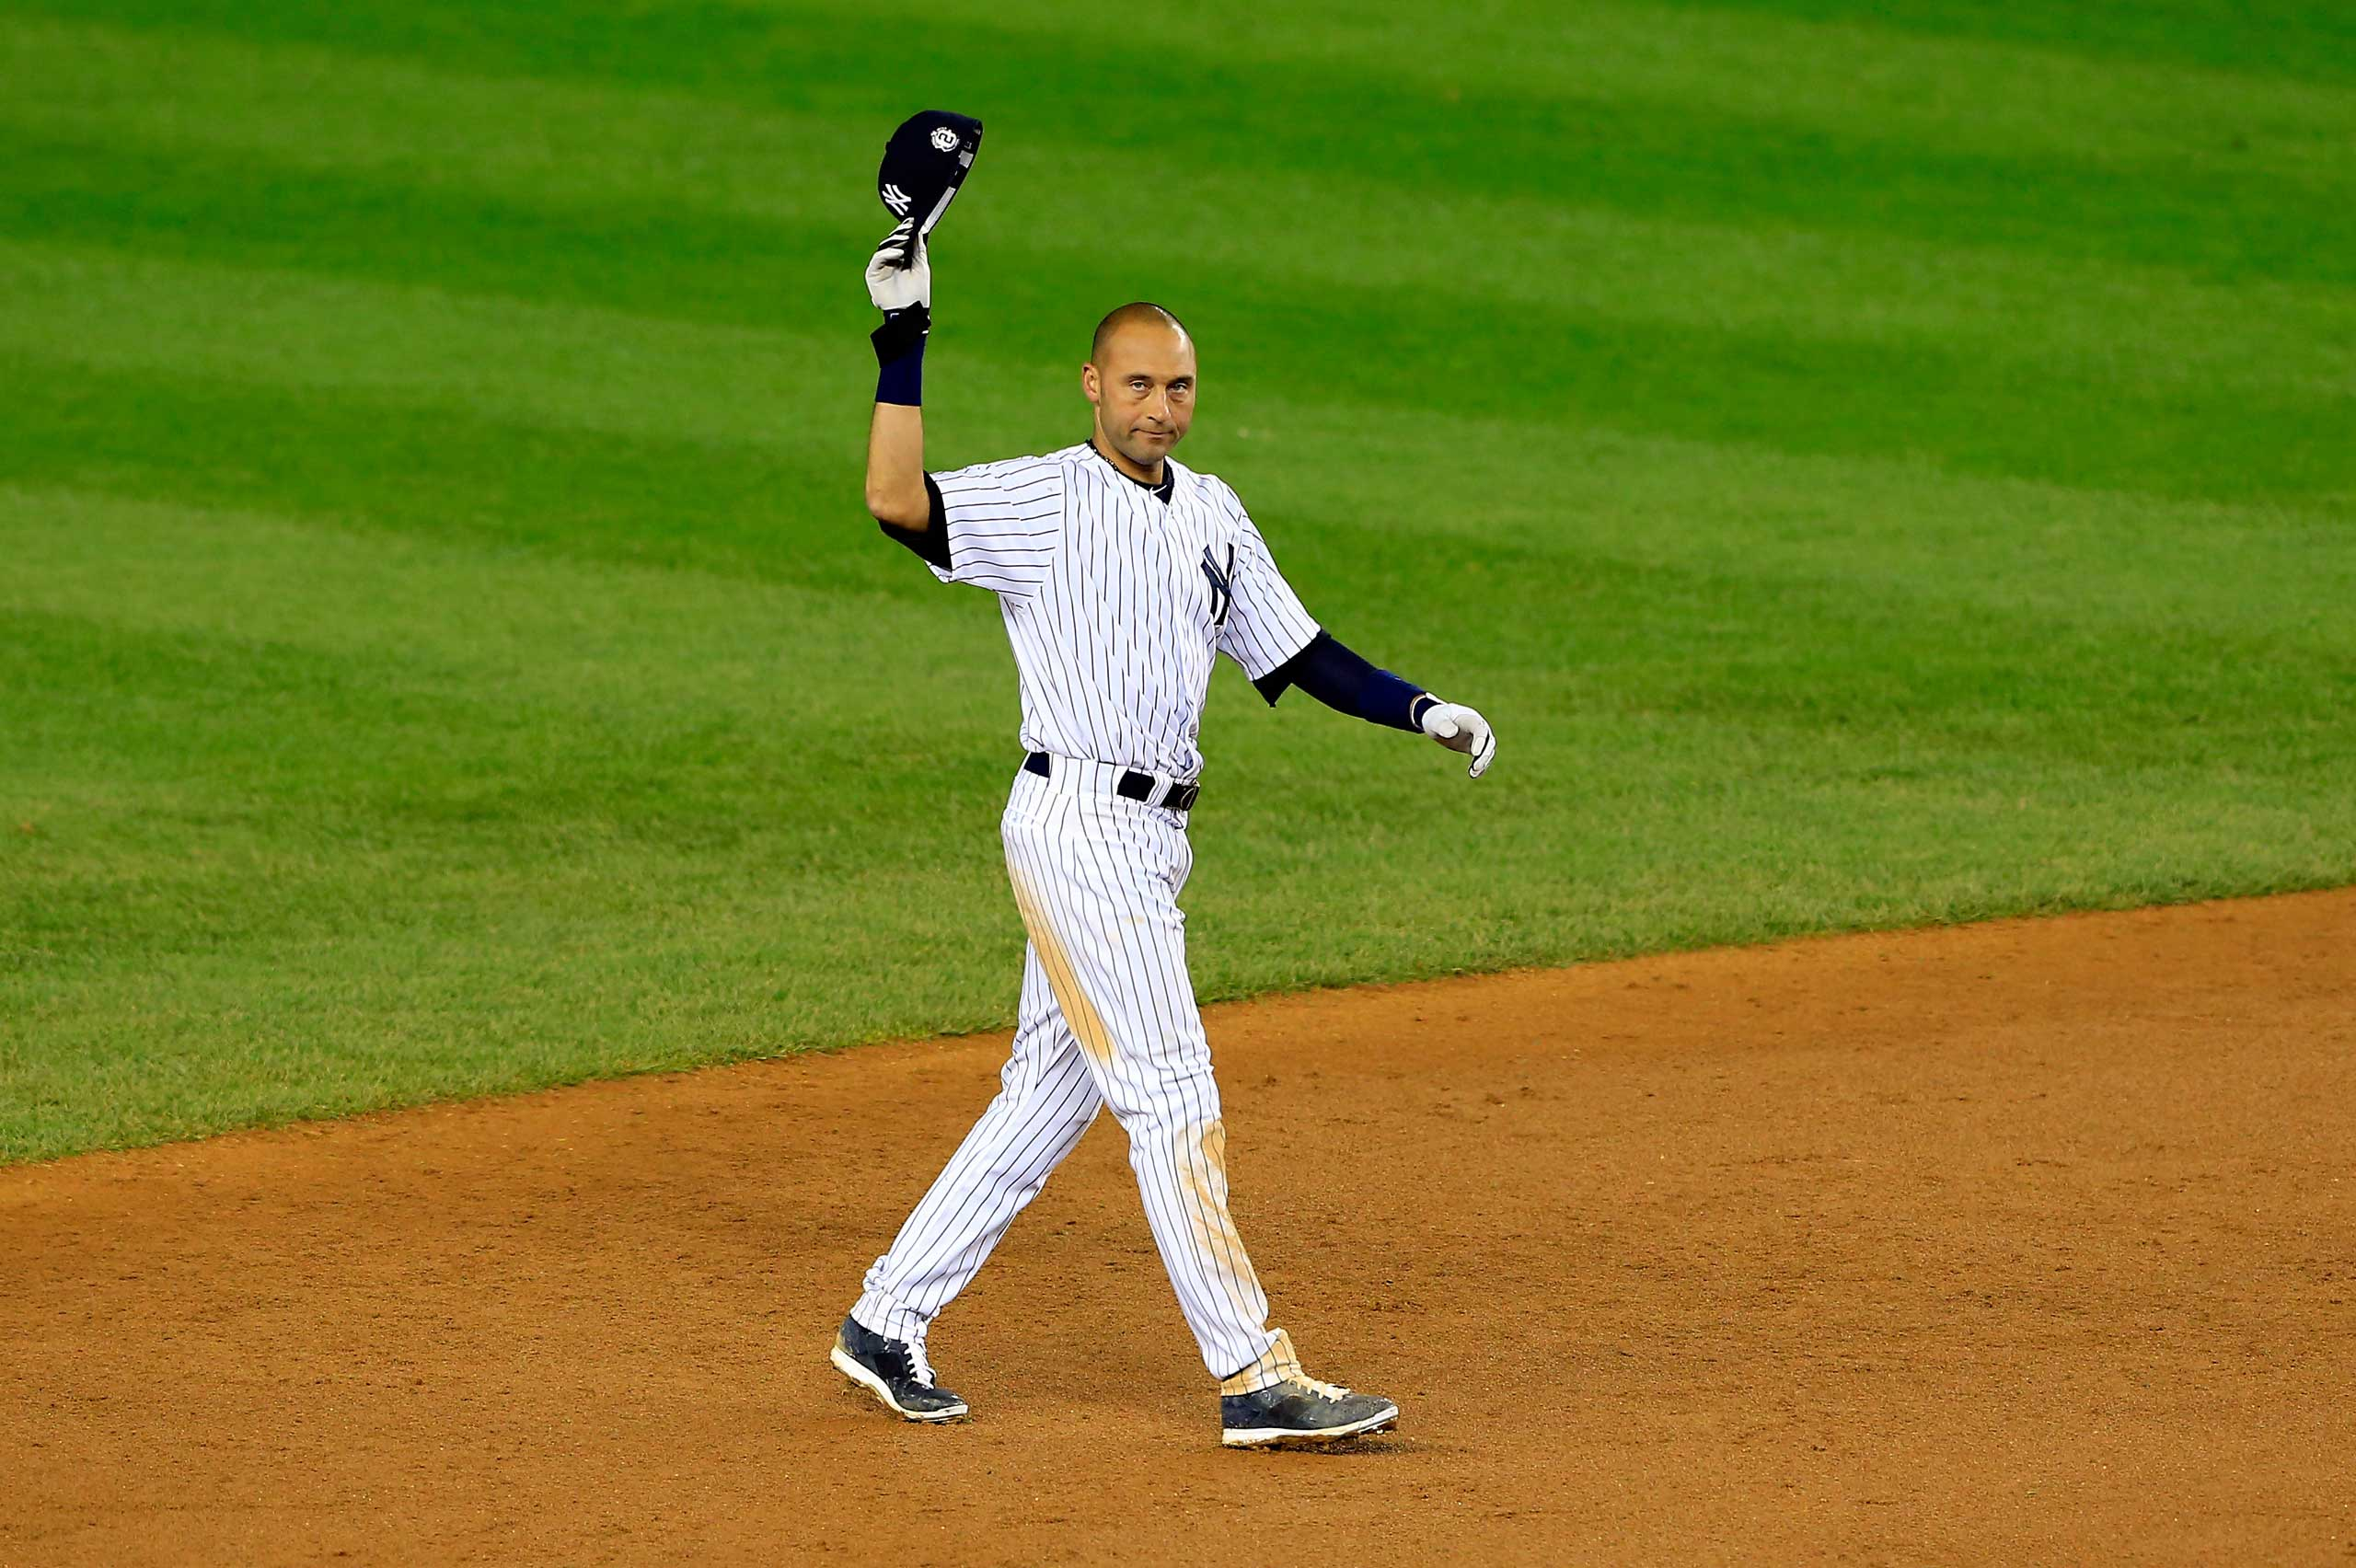 Derek Jeter gestures to the fans after a game winning RBI hit in the ninth inning against the Baltimore Orioles in his last game ever at Yankee Stadium on Sept. 25, 2014.